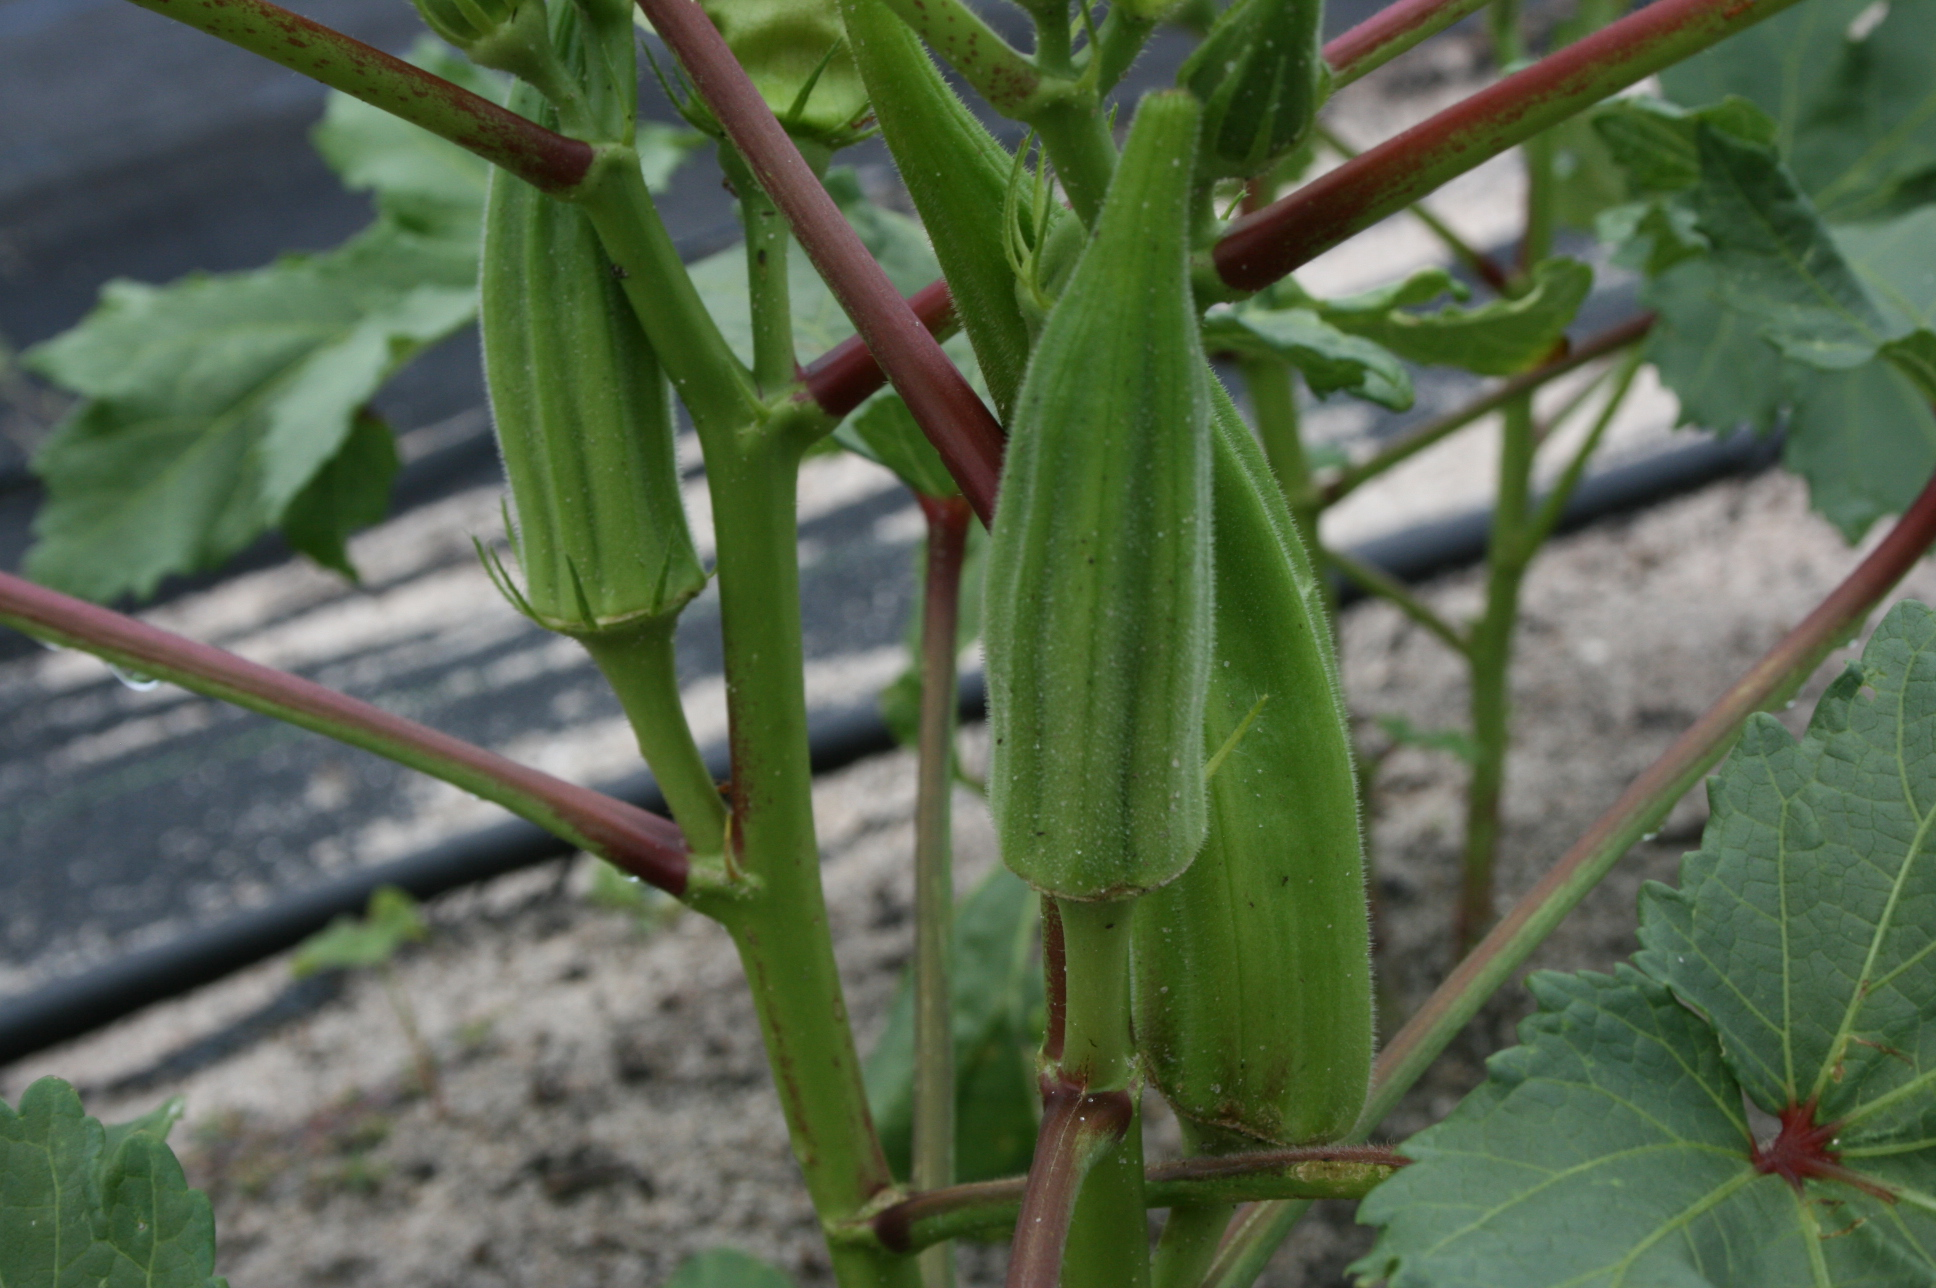 How To Grow Okra From Seed Easily In Your Own Home